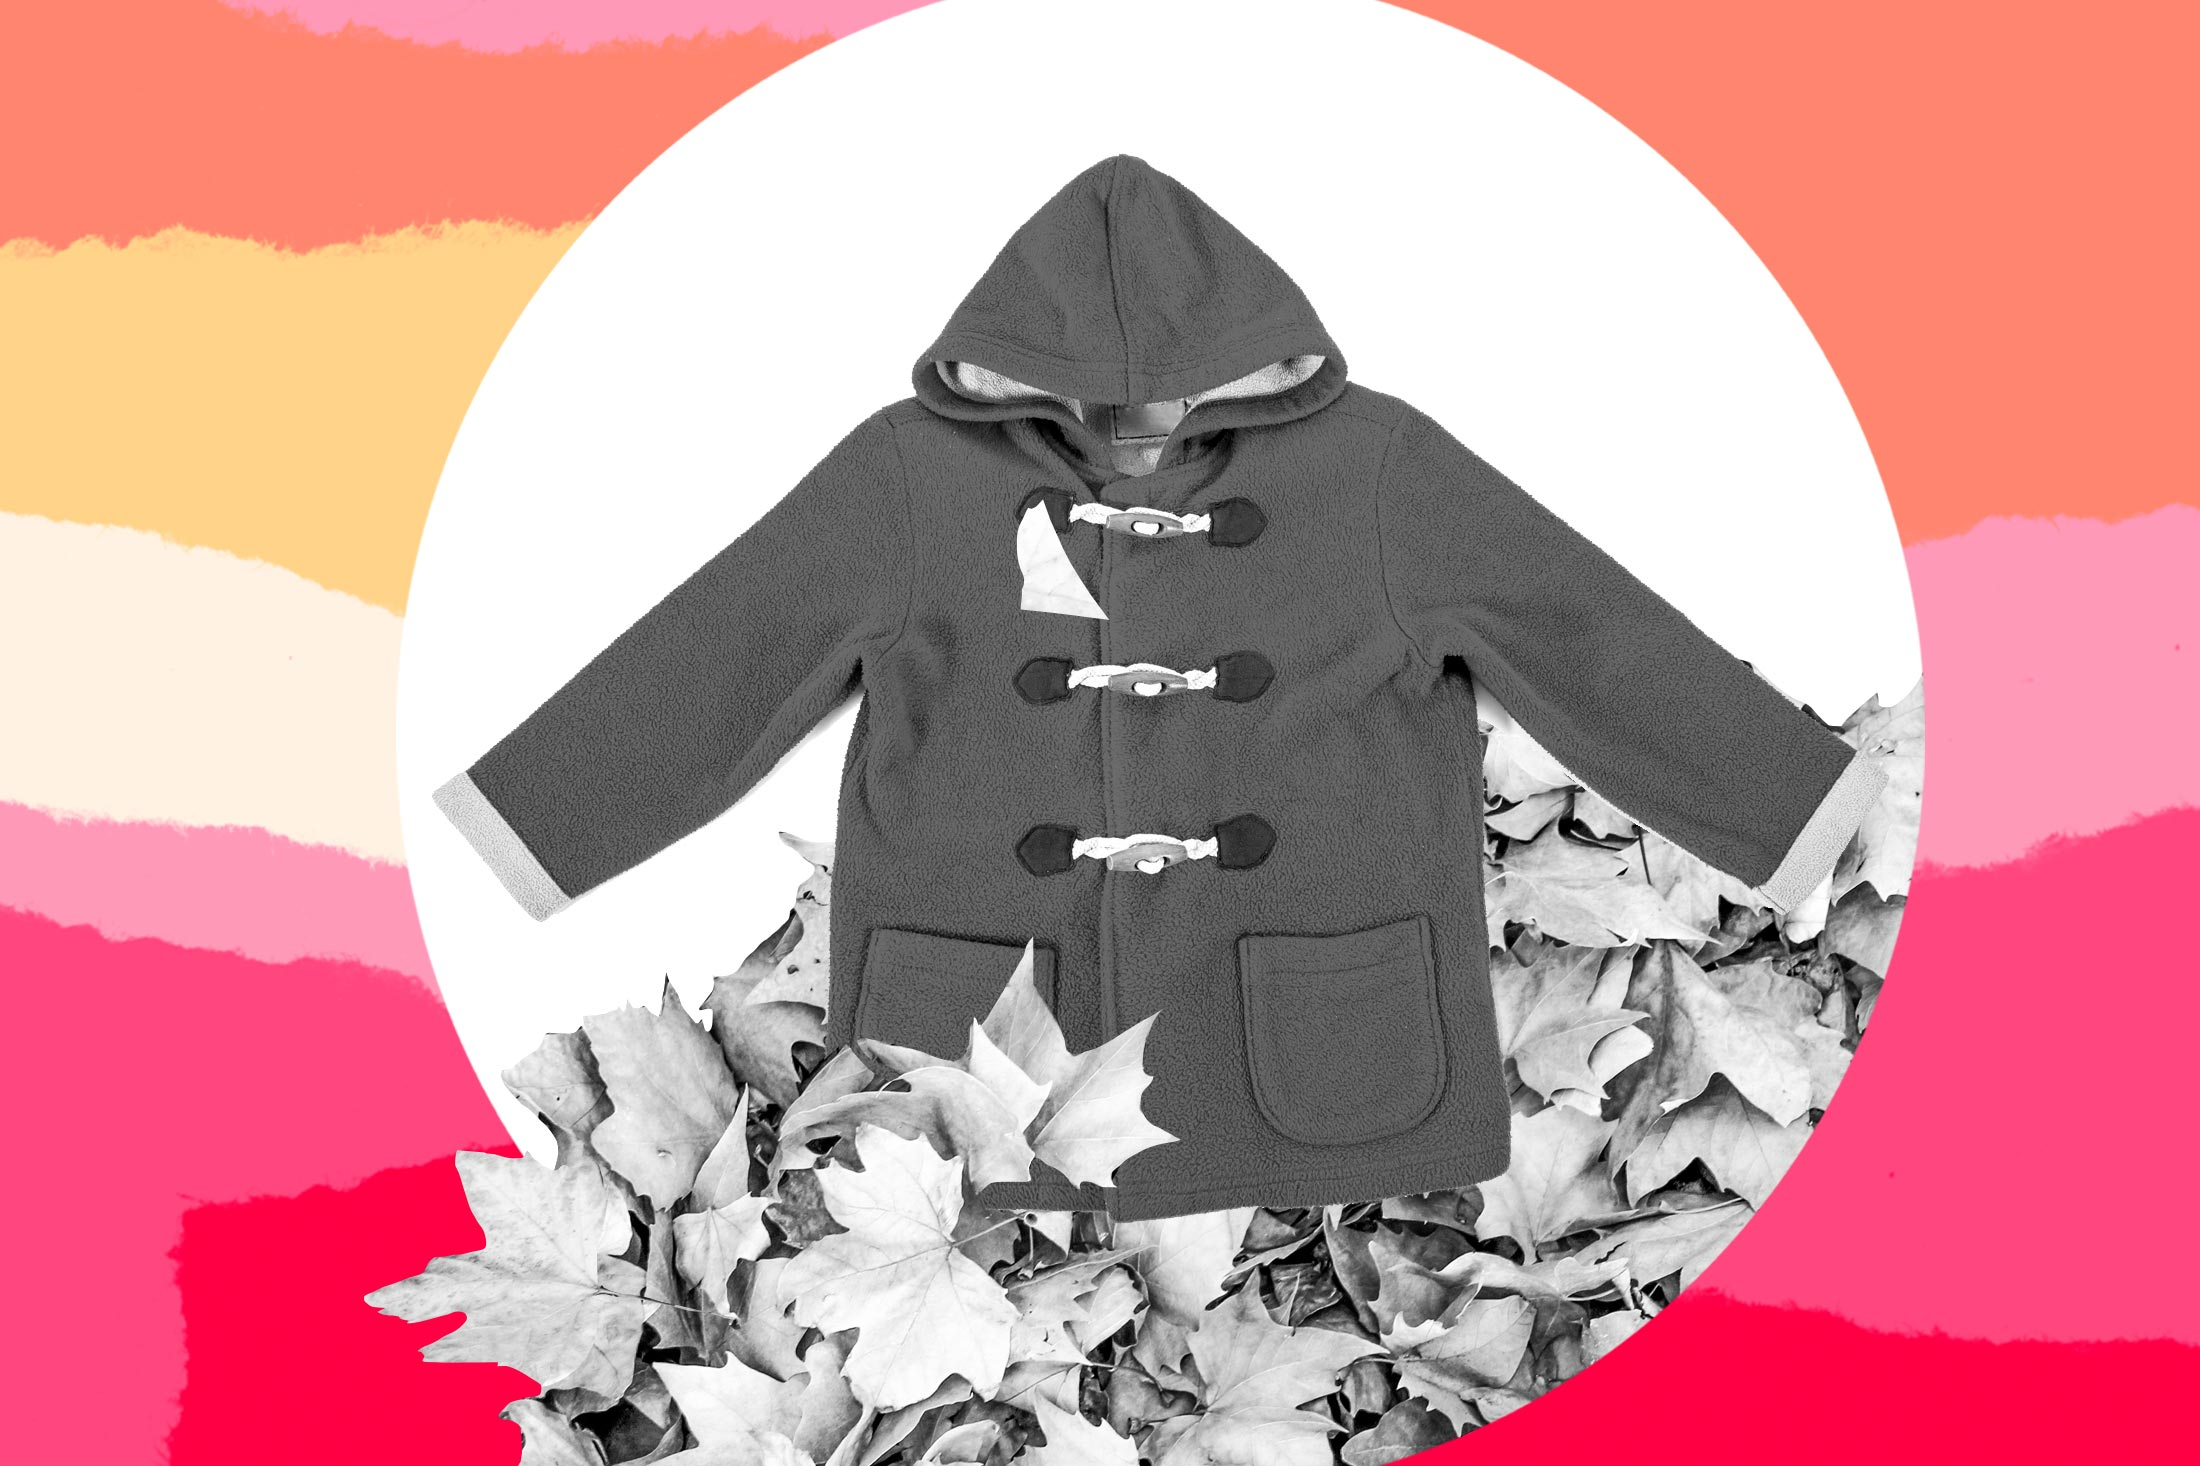 A child's coat in a pile of leaves.